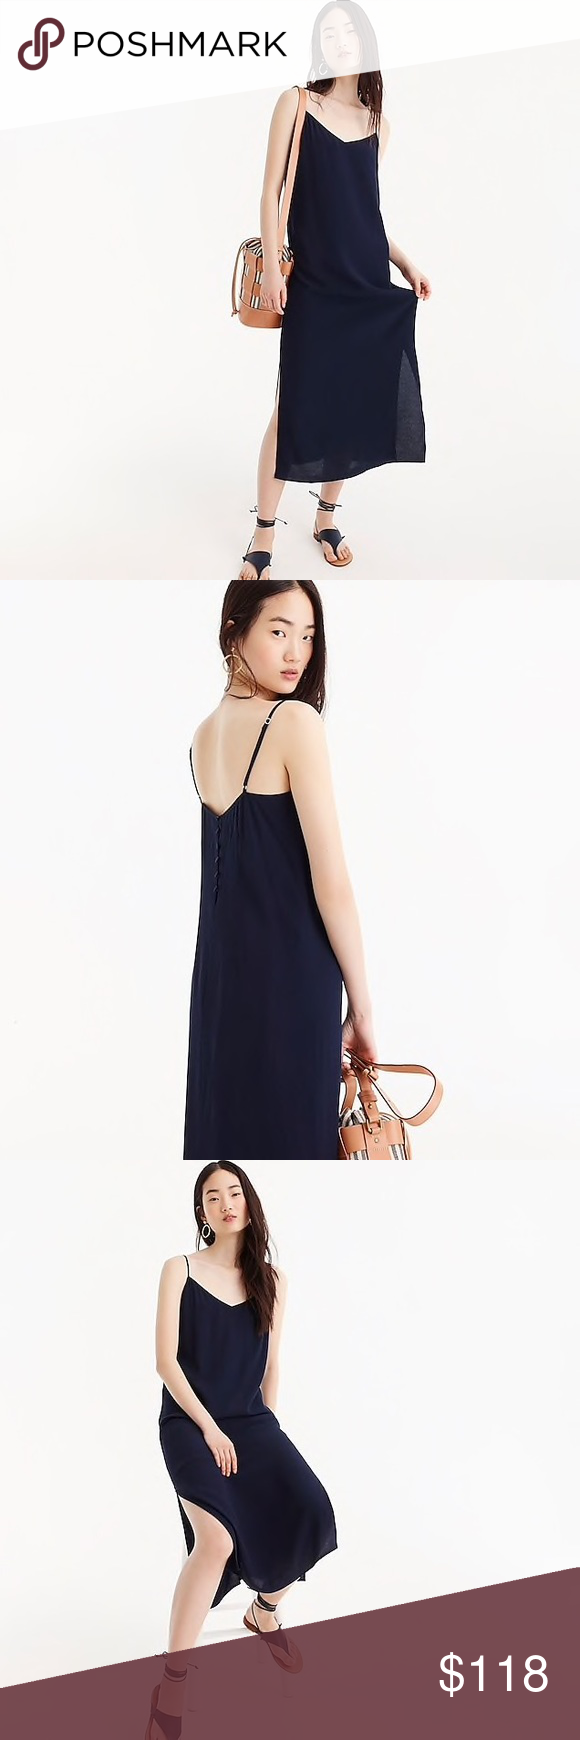 fa7da7dd5b73 NWT J.Crew • Midi Button-Back Slip Dress Every closet needs one—the ...